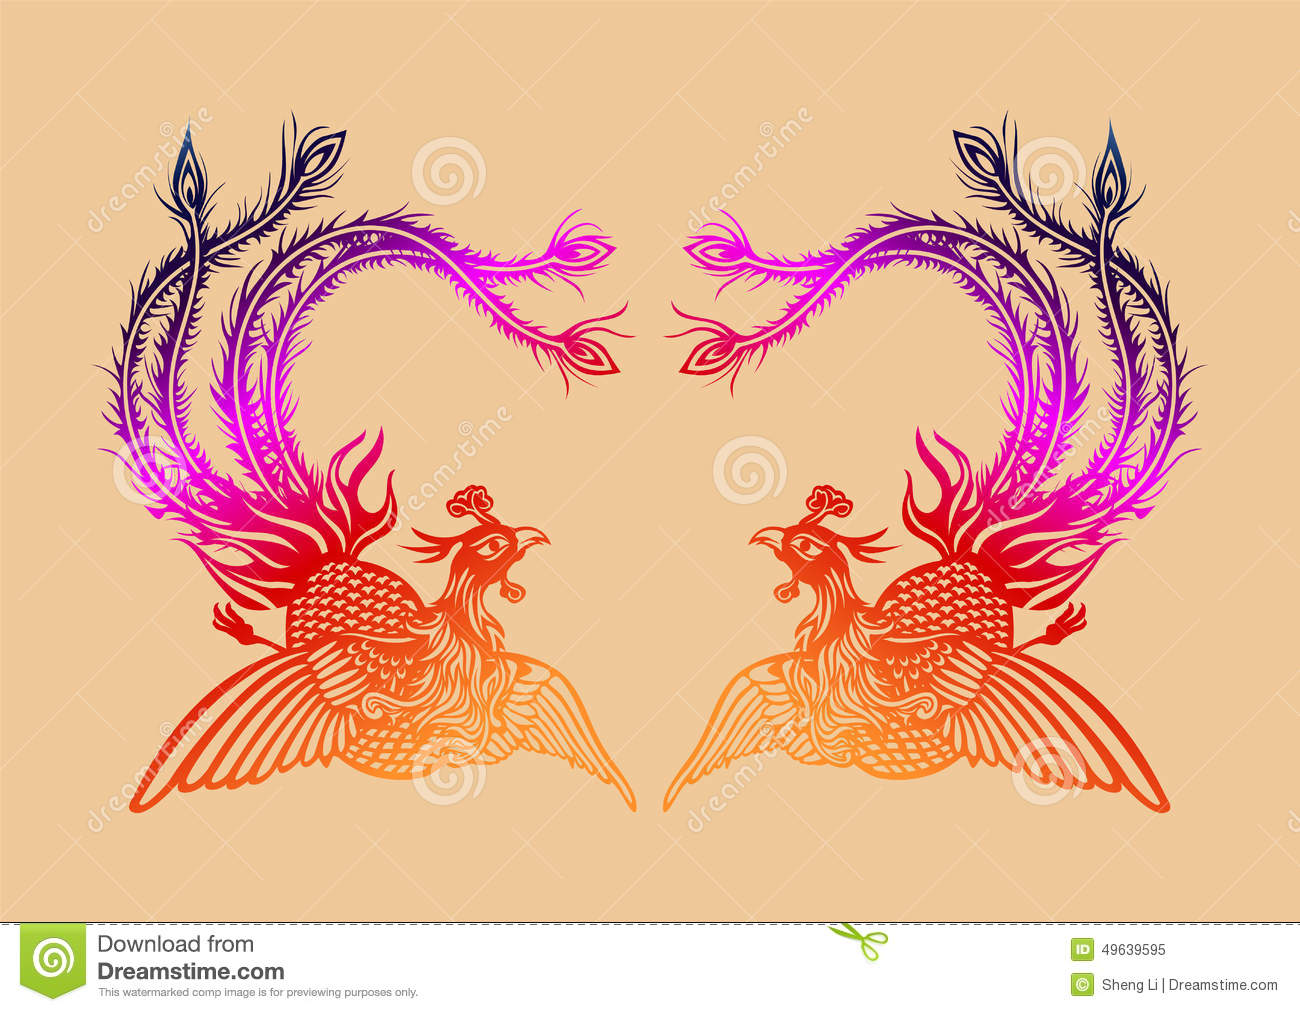 Chinese Ancient Phoenix Pattern Stock Vector - Illustration of ...